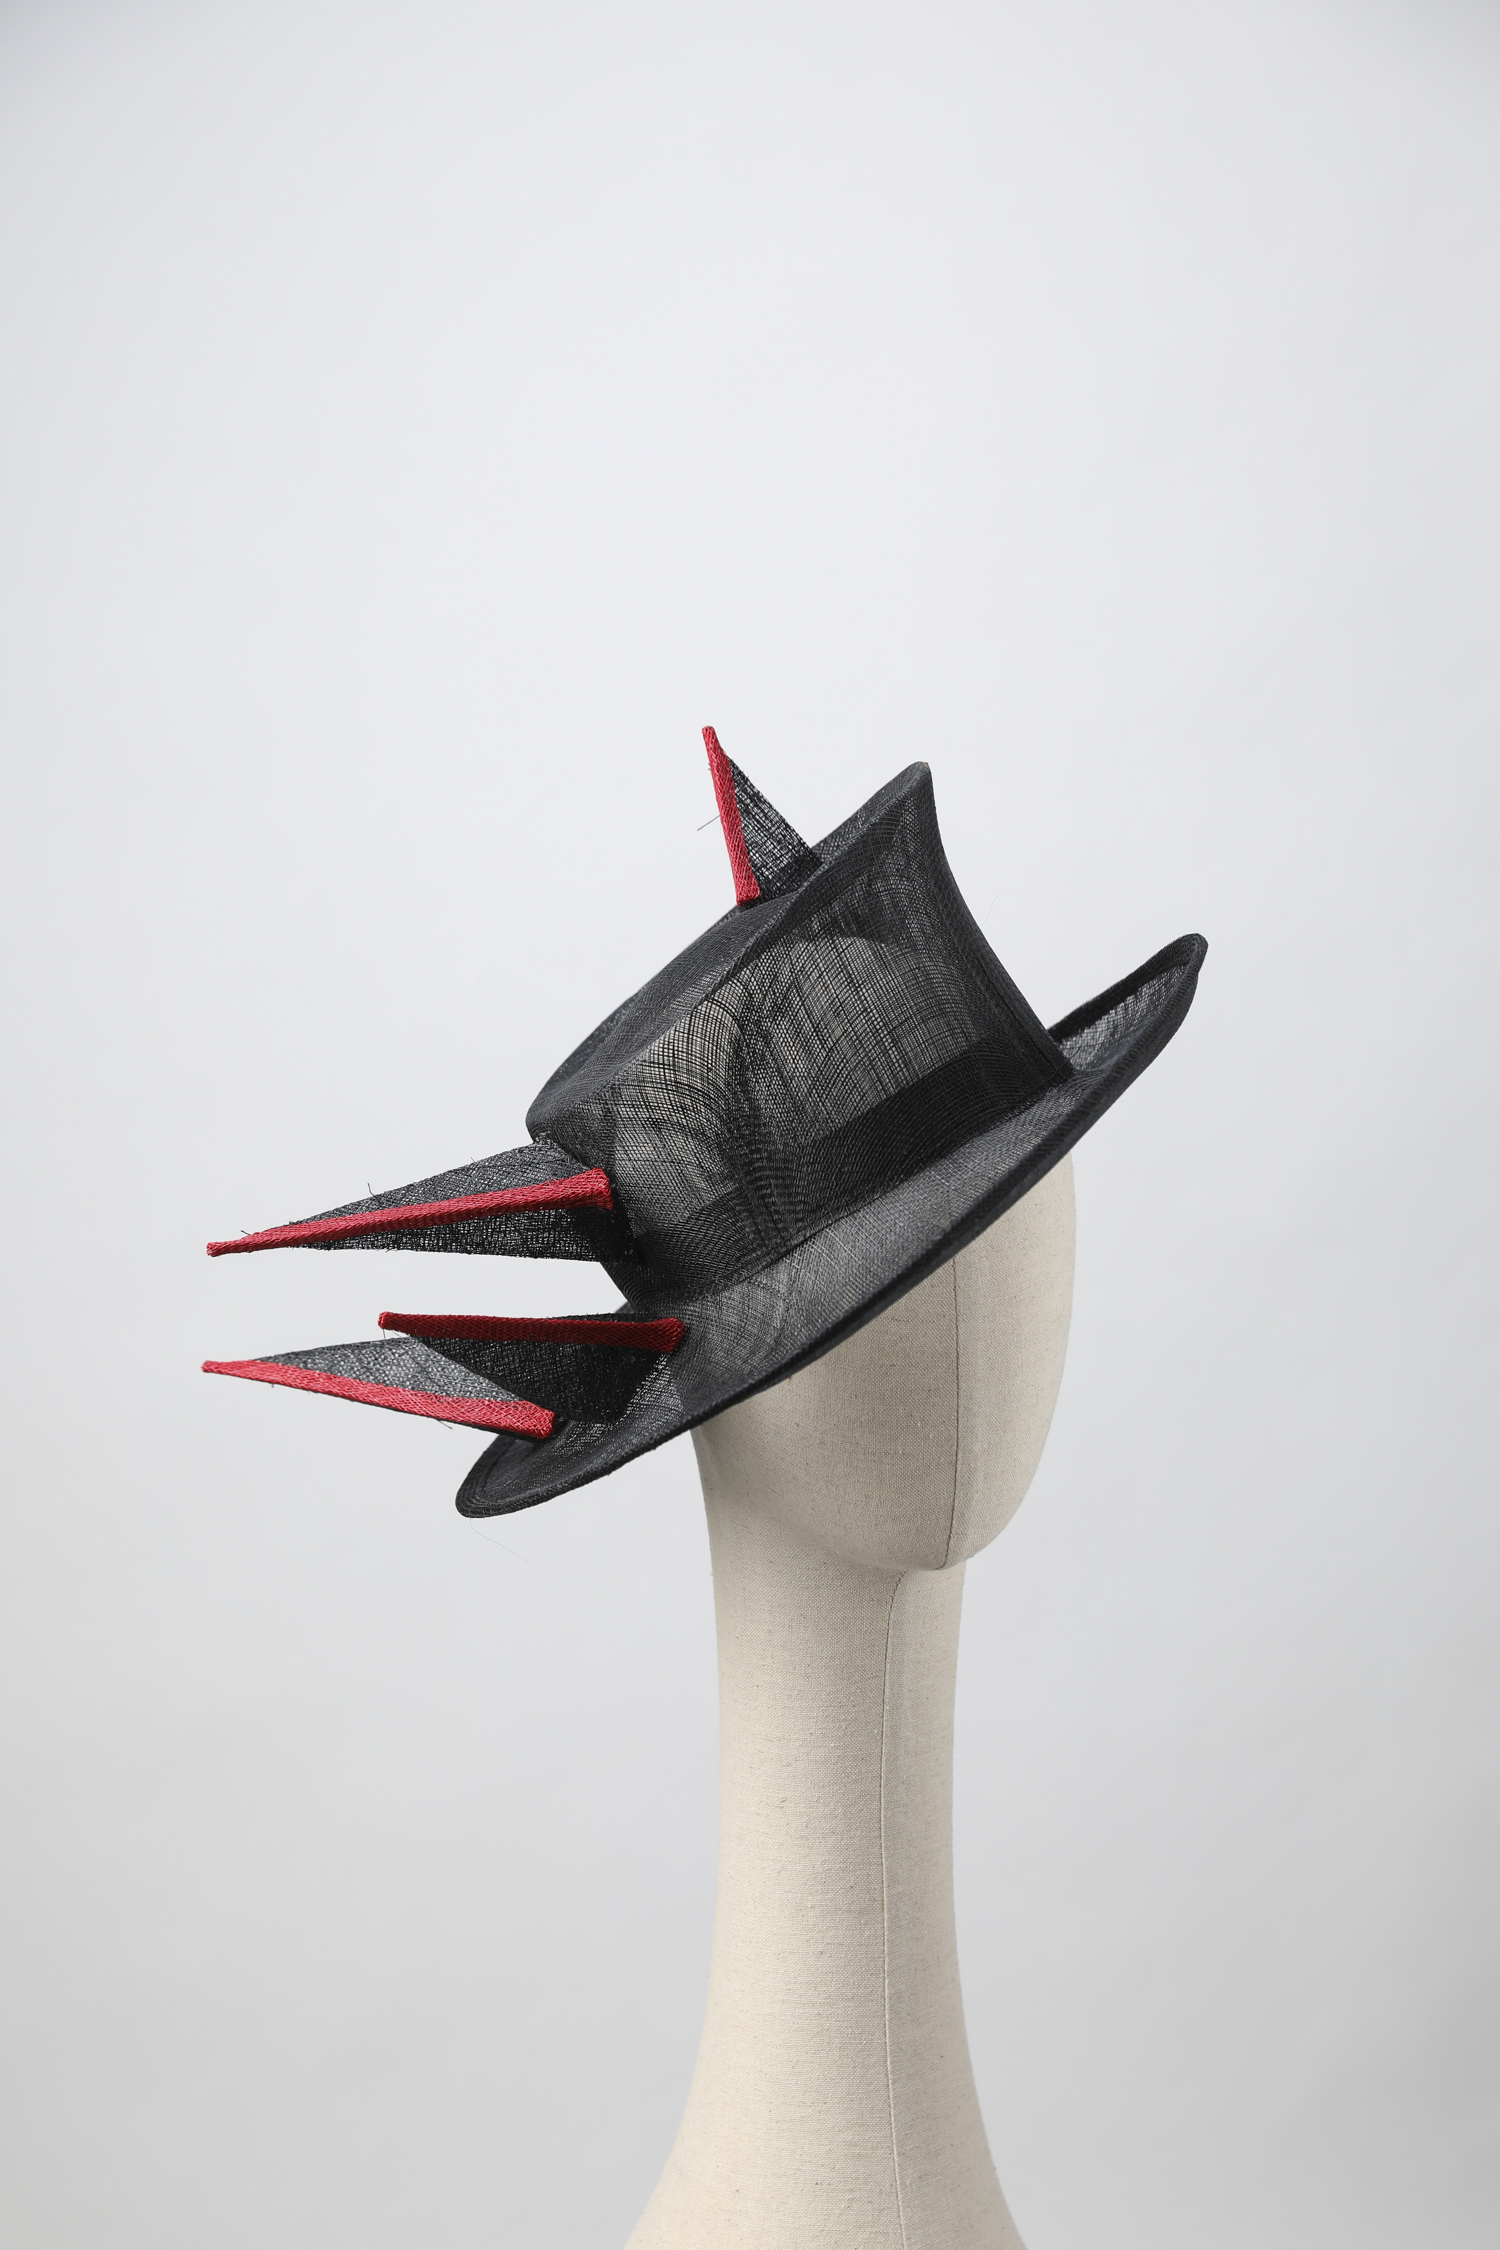 Copy of Jaycow Millinery by Jay Cheng Sample Stock 2019 (62).jpg